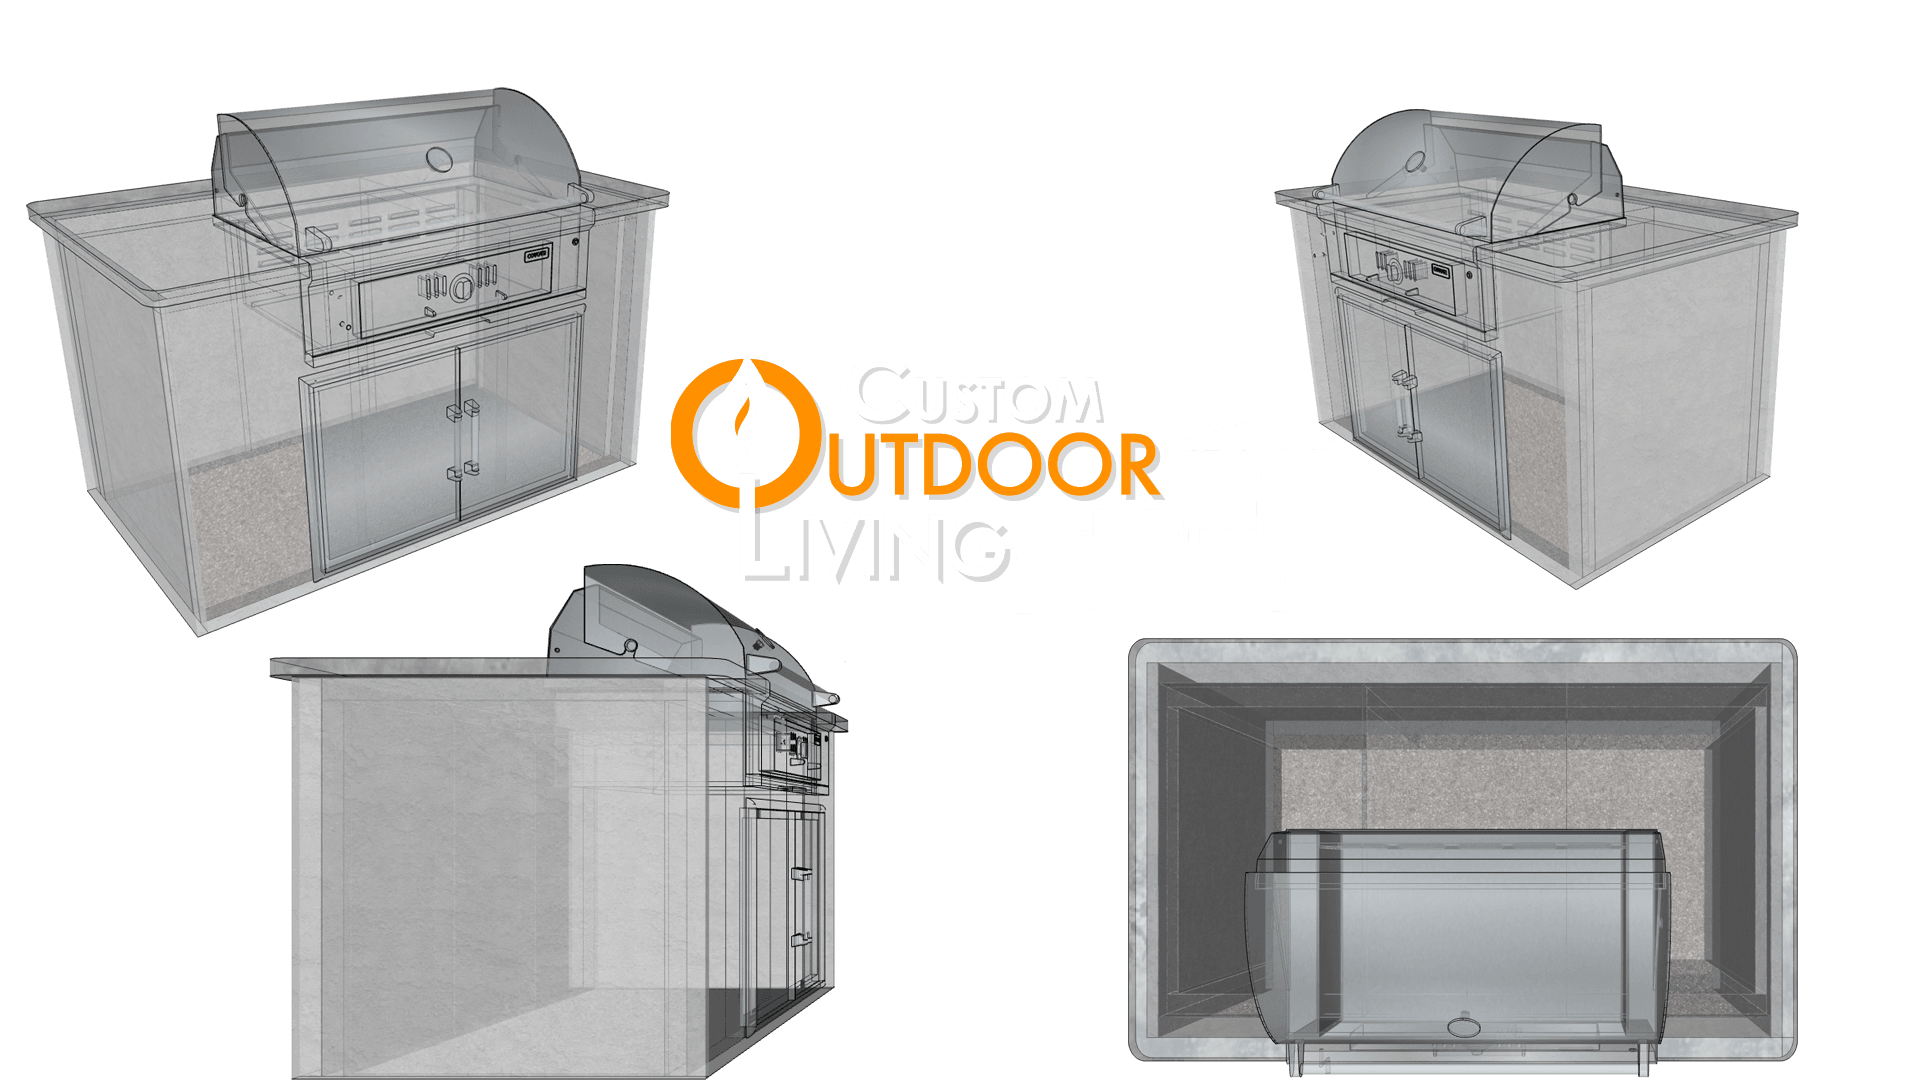 Compact Linear Outdoor Kitchen Design Layout Configuration Drawing - Custom Outdoor Living of Las Vegas, Nevada